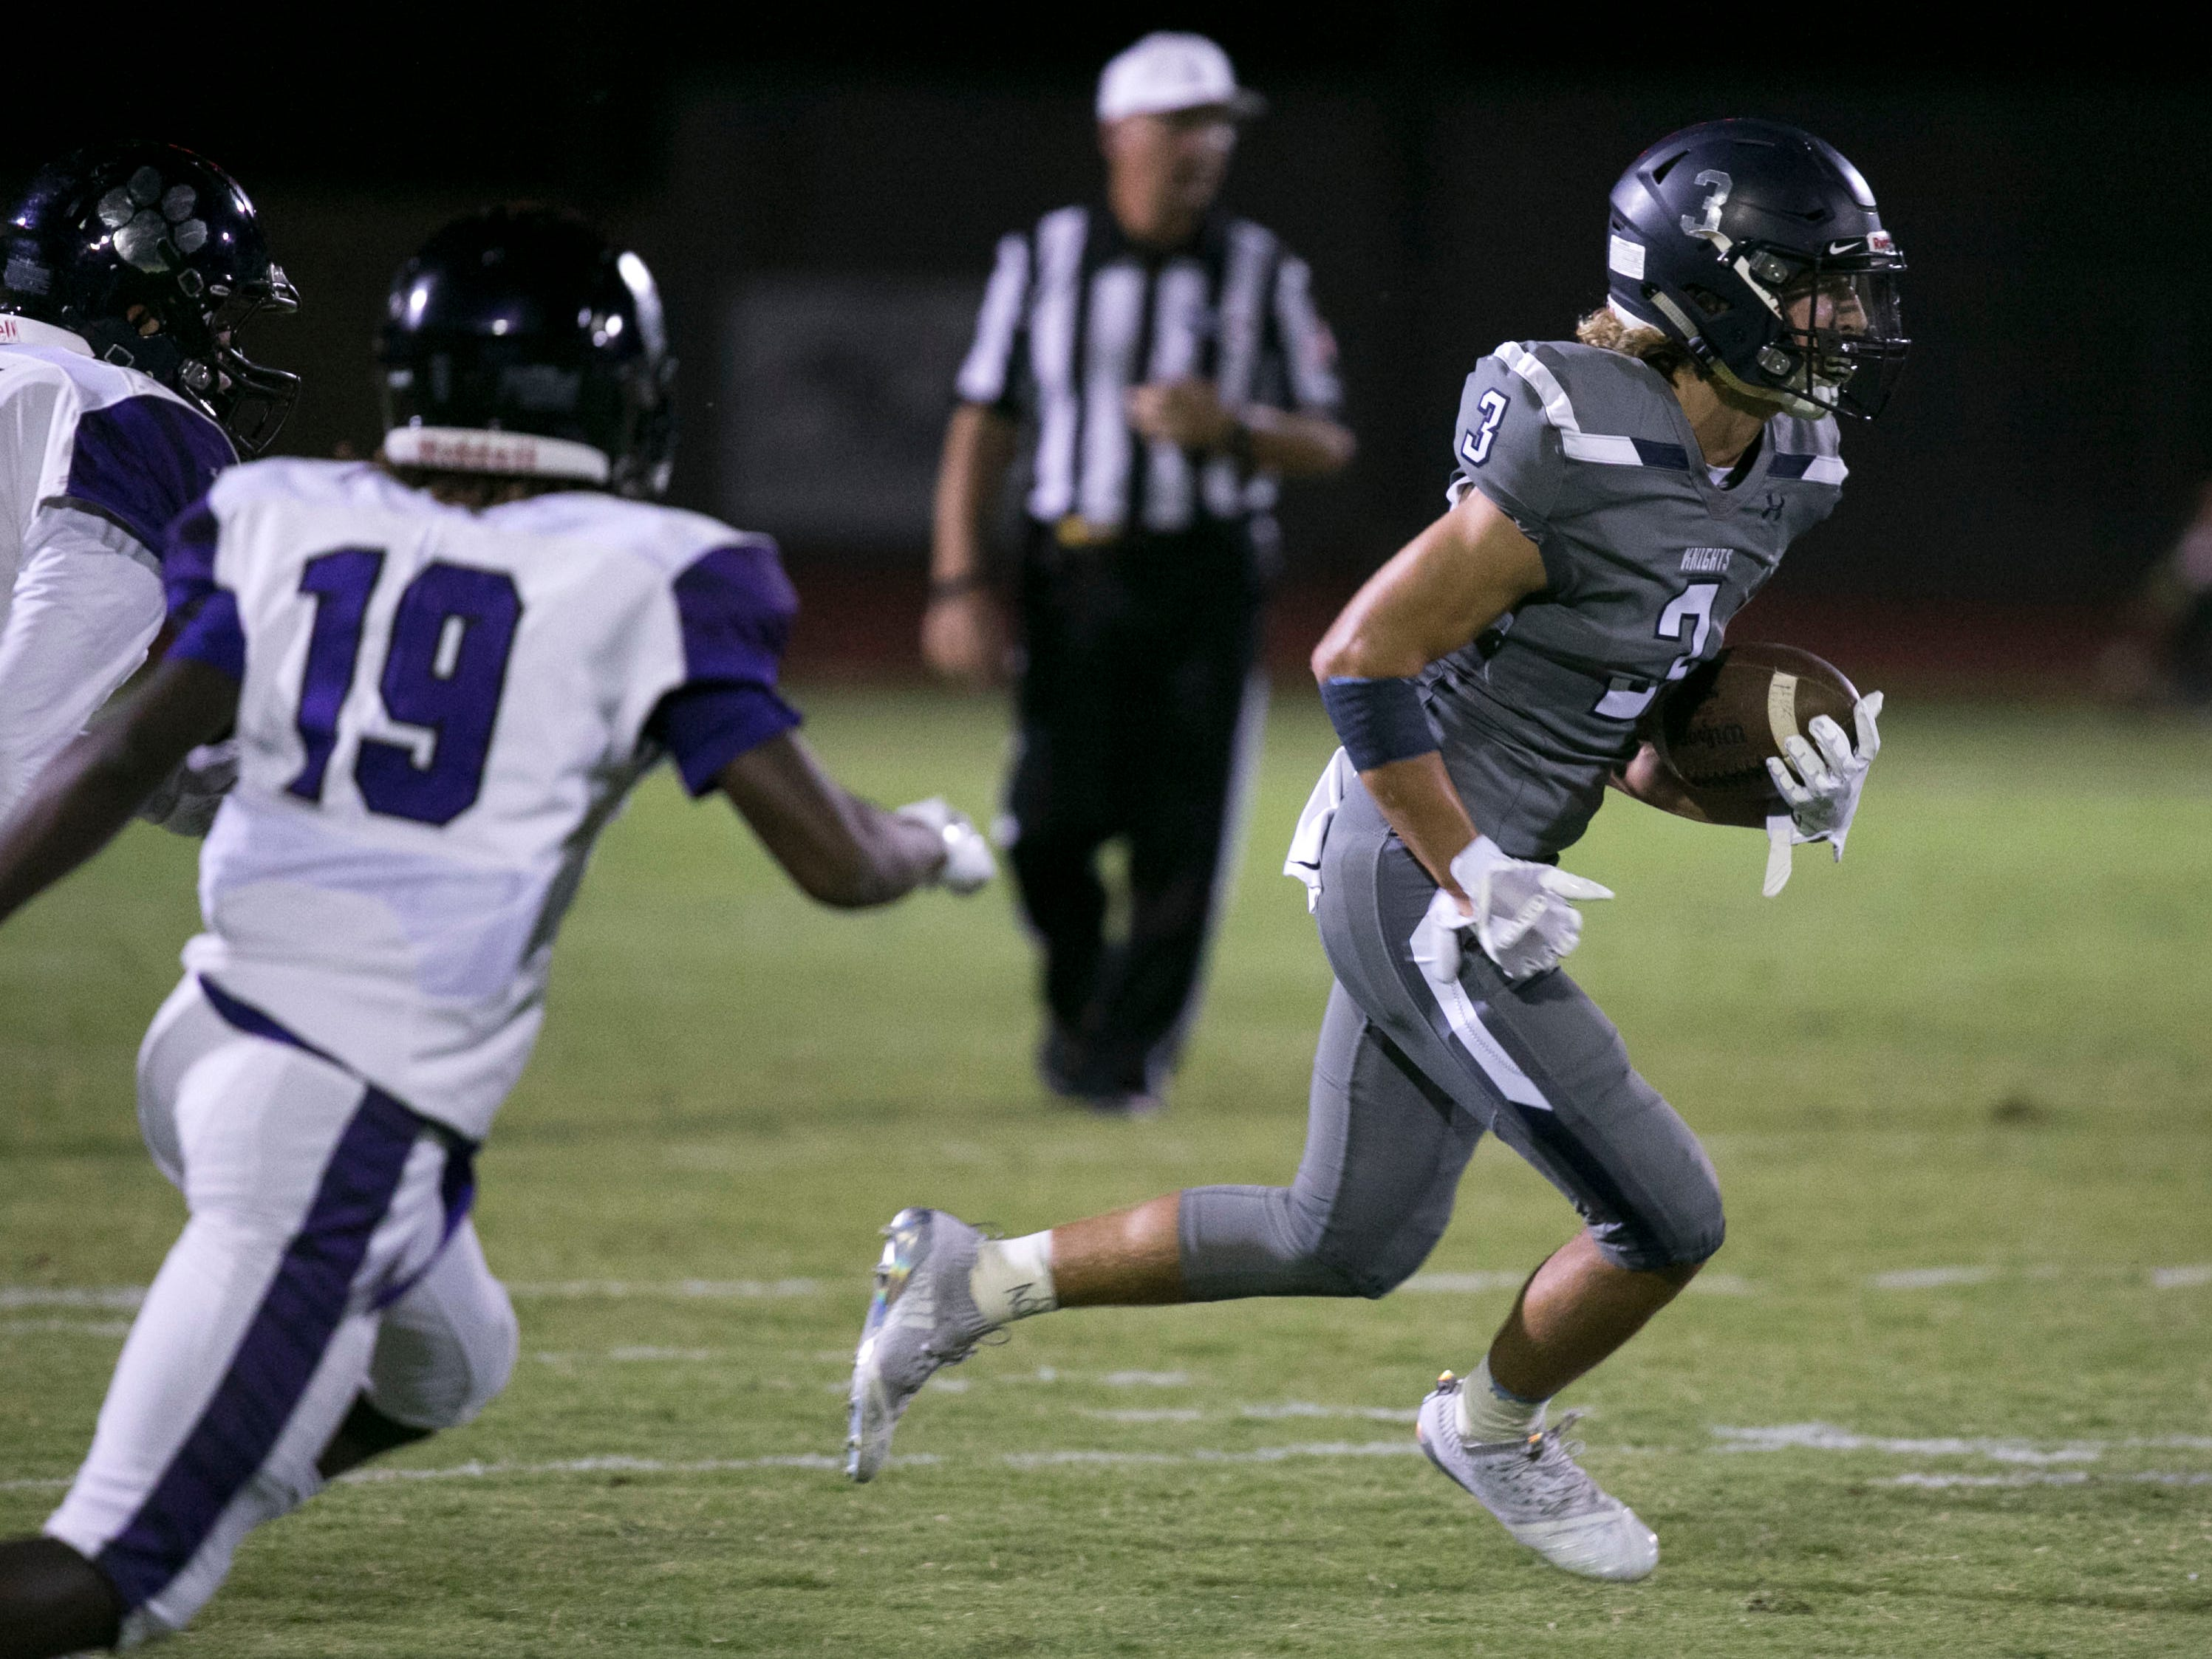 Higley High receiver Coleman Owen carries the ball as he is pursued by Millennium High defensive back Kaysan Barnett during the second quarter of the high school football game at Higley High in Gilbert on Friday evening, September 14, 2018.